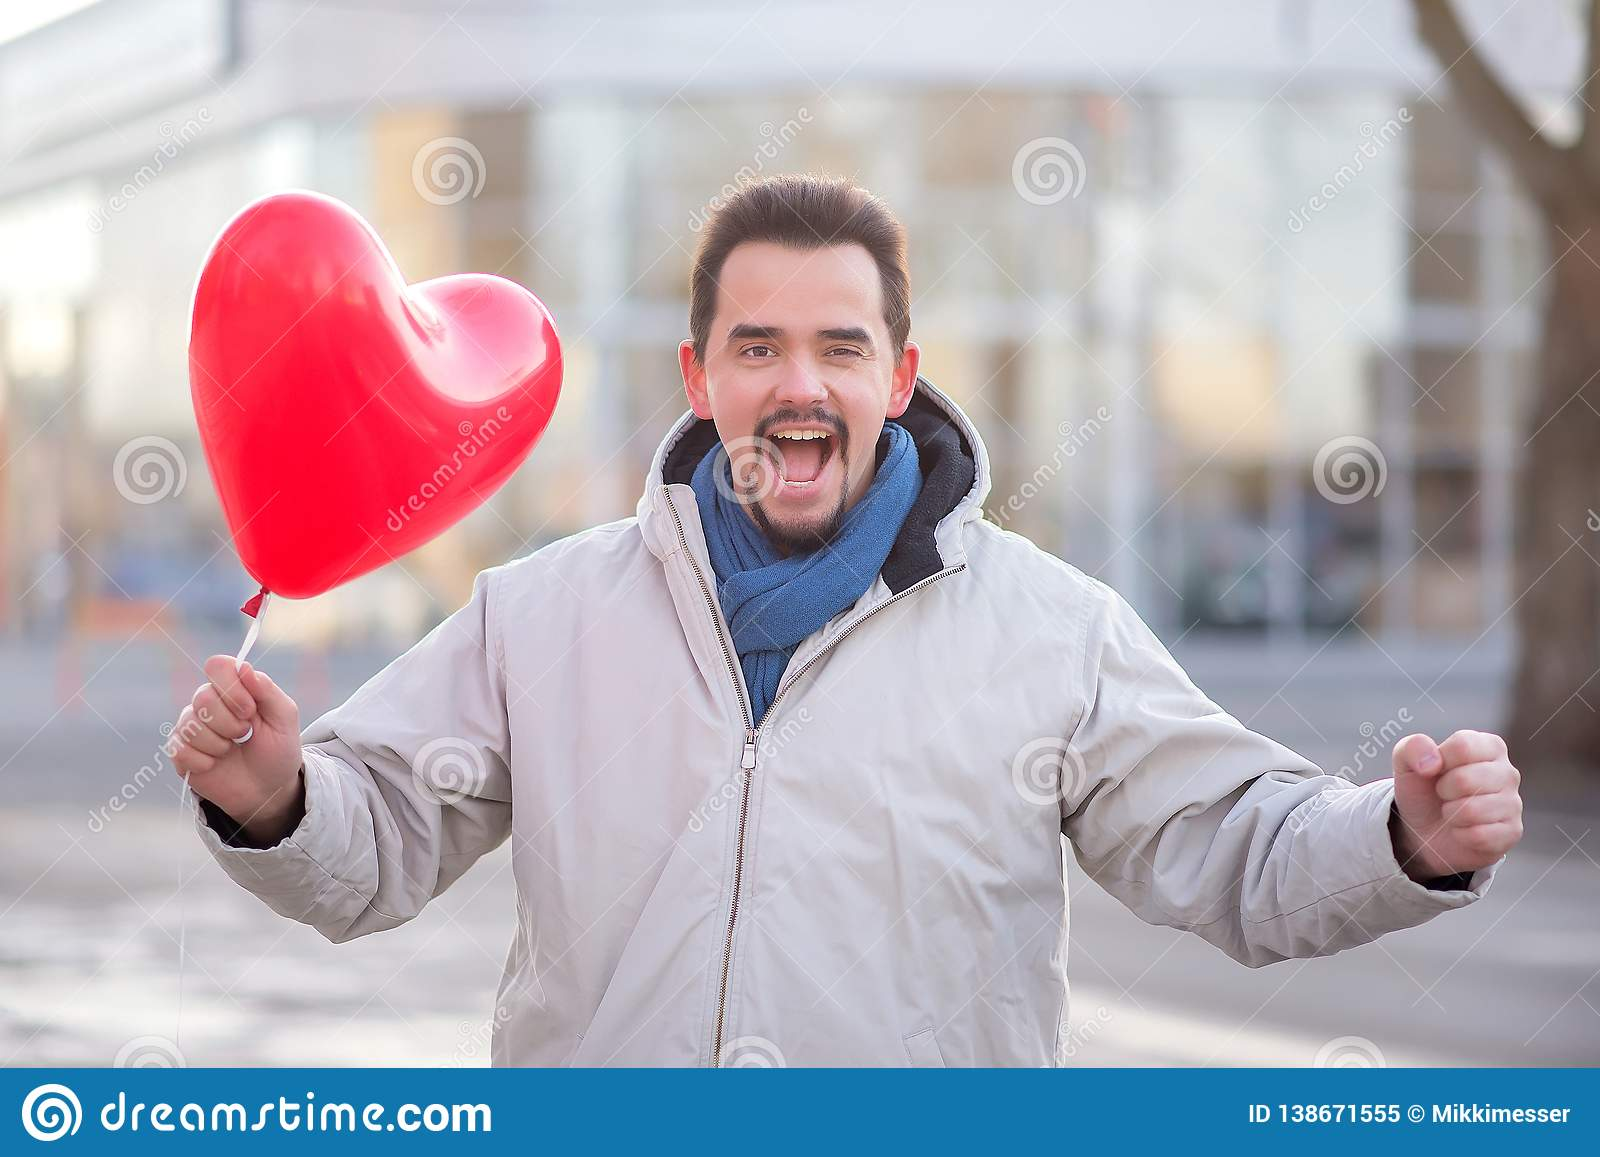 Happily laughing handsome man with a red heart shaped air ballon standing in a city street